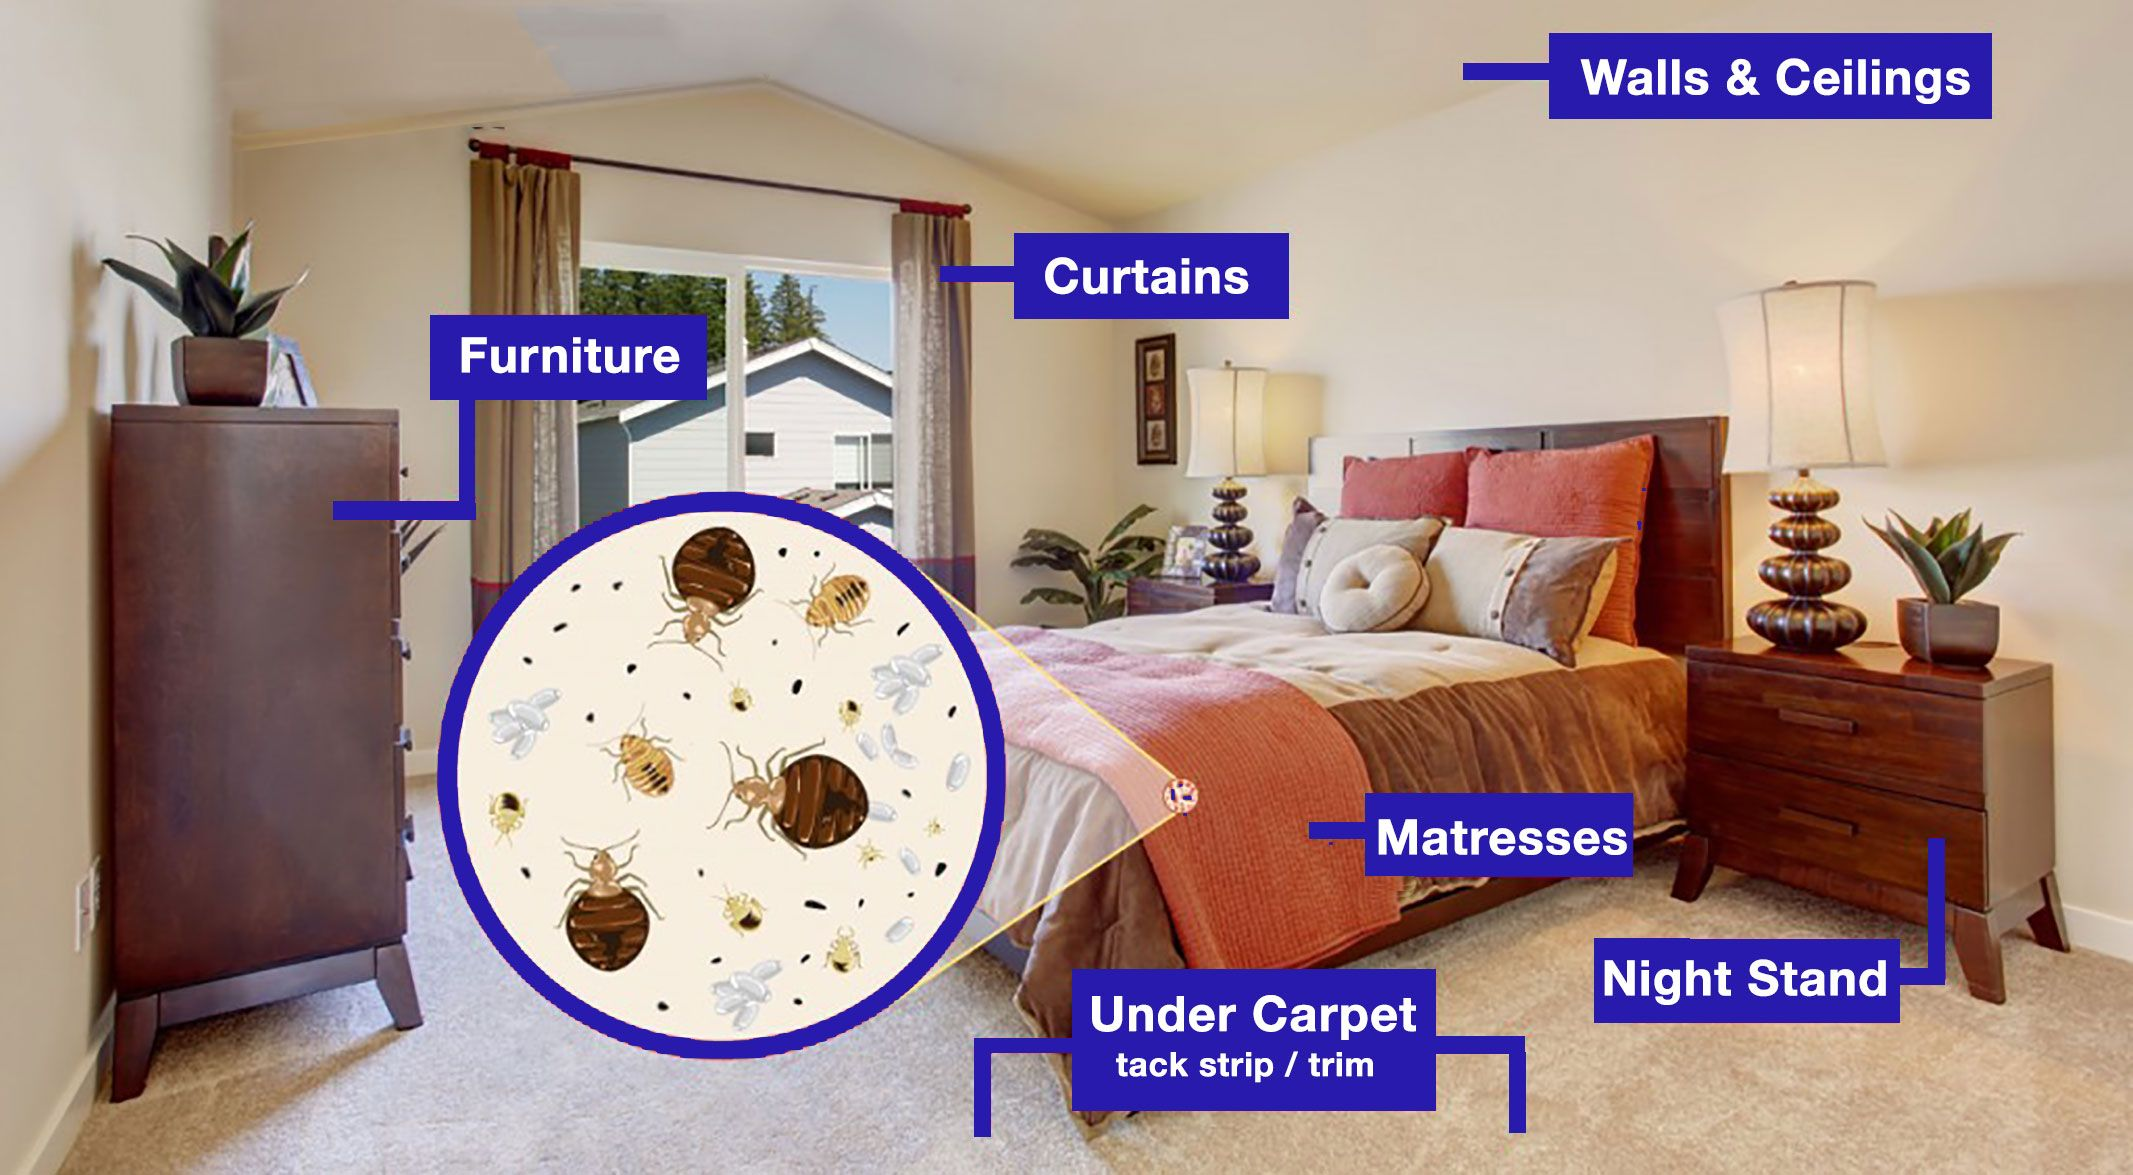 Check out our blog for the bed bug inspection steps when